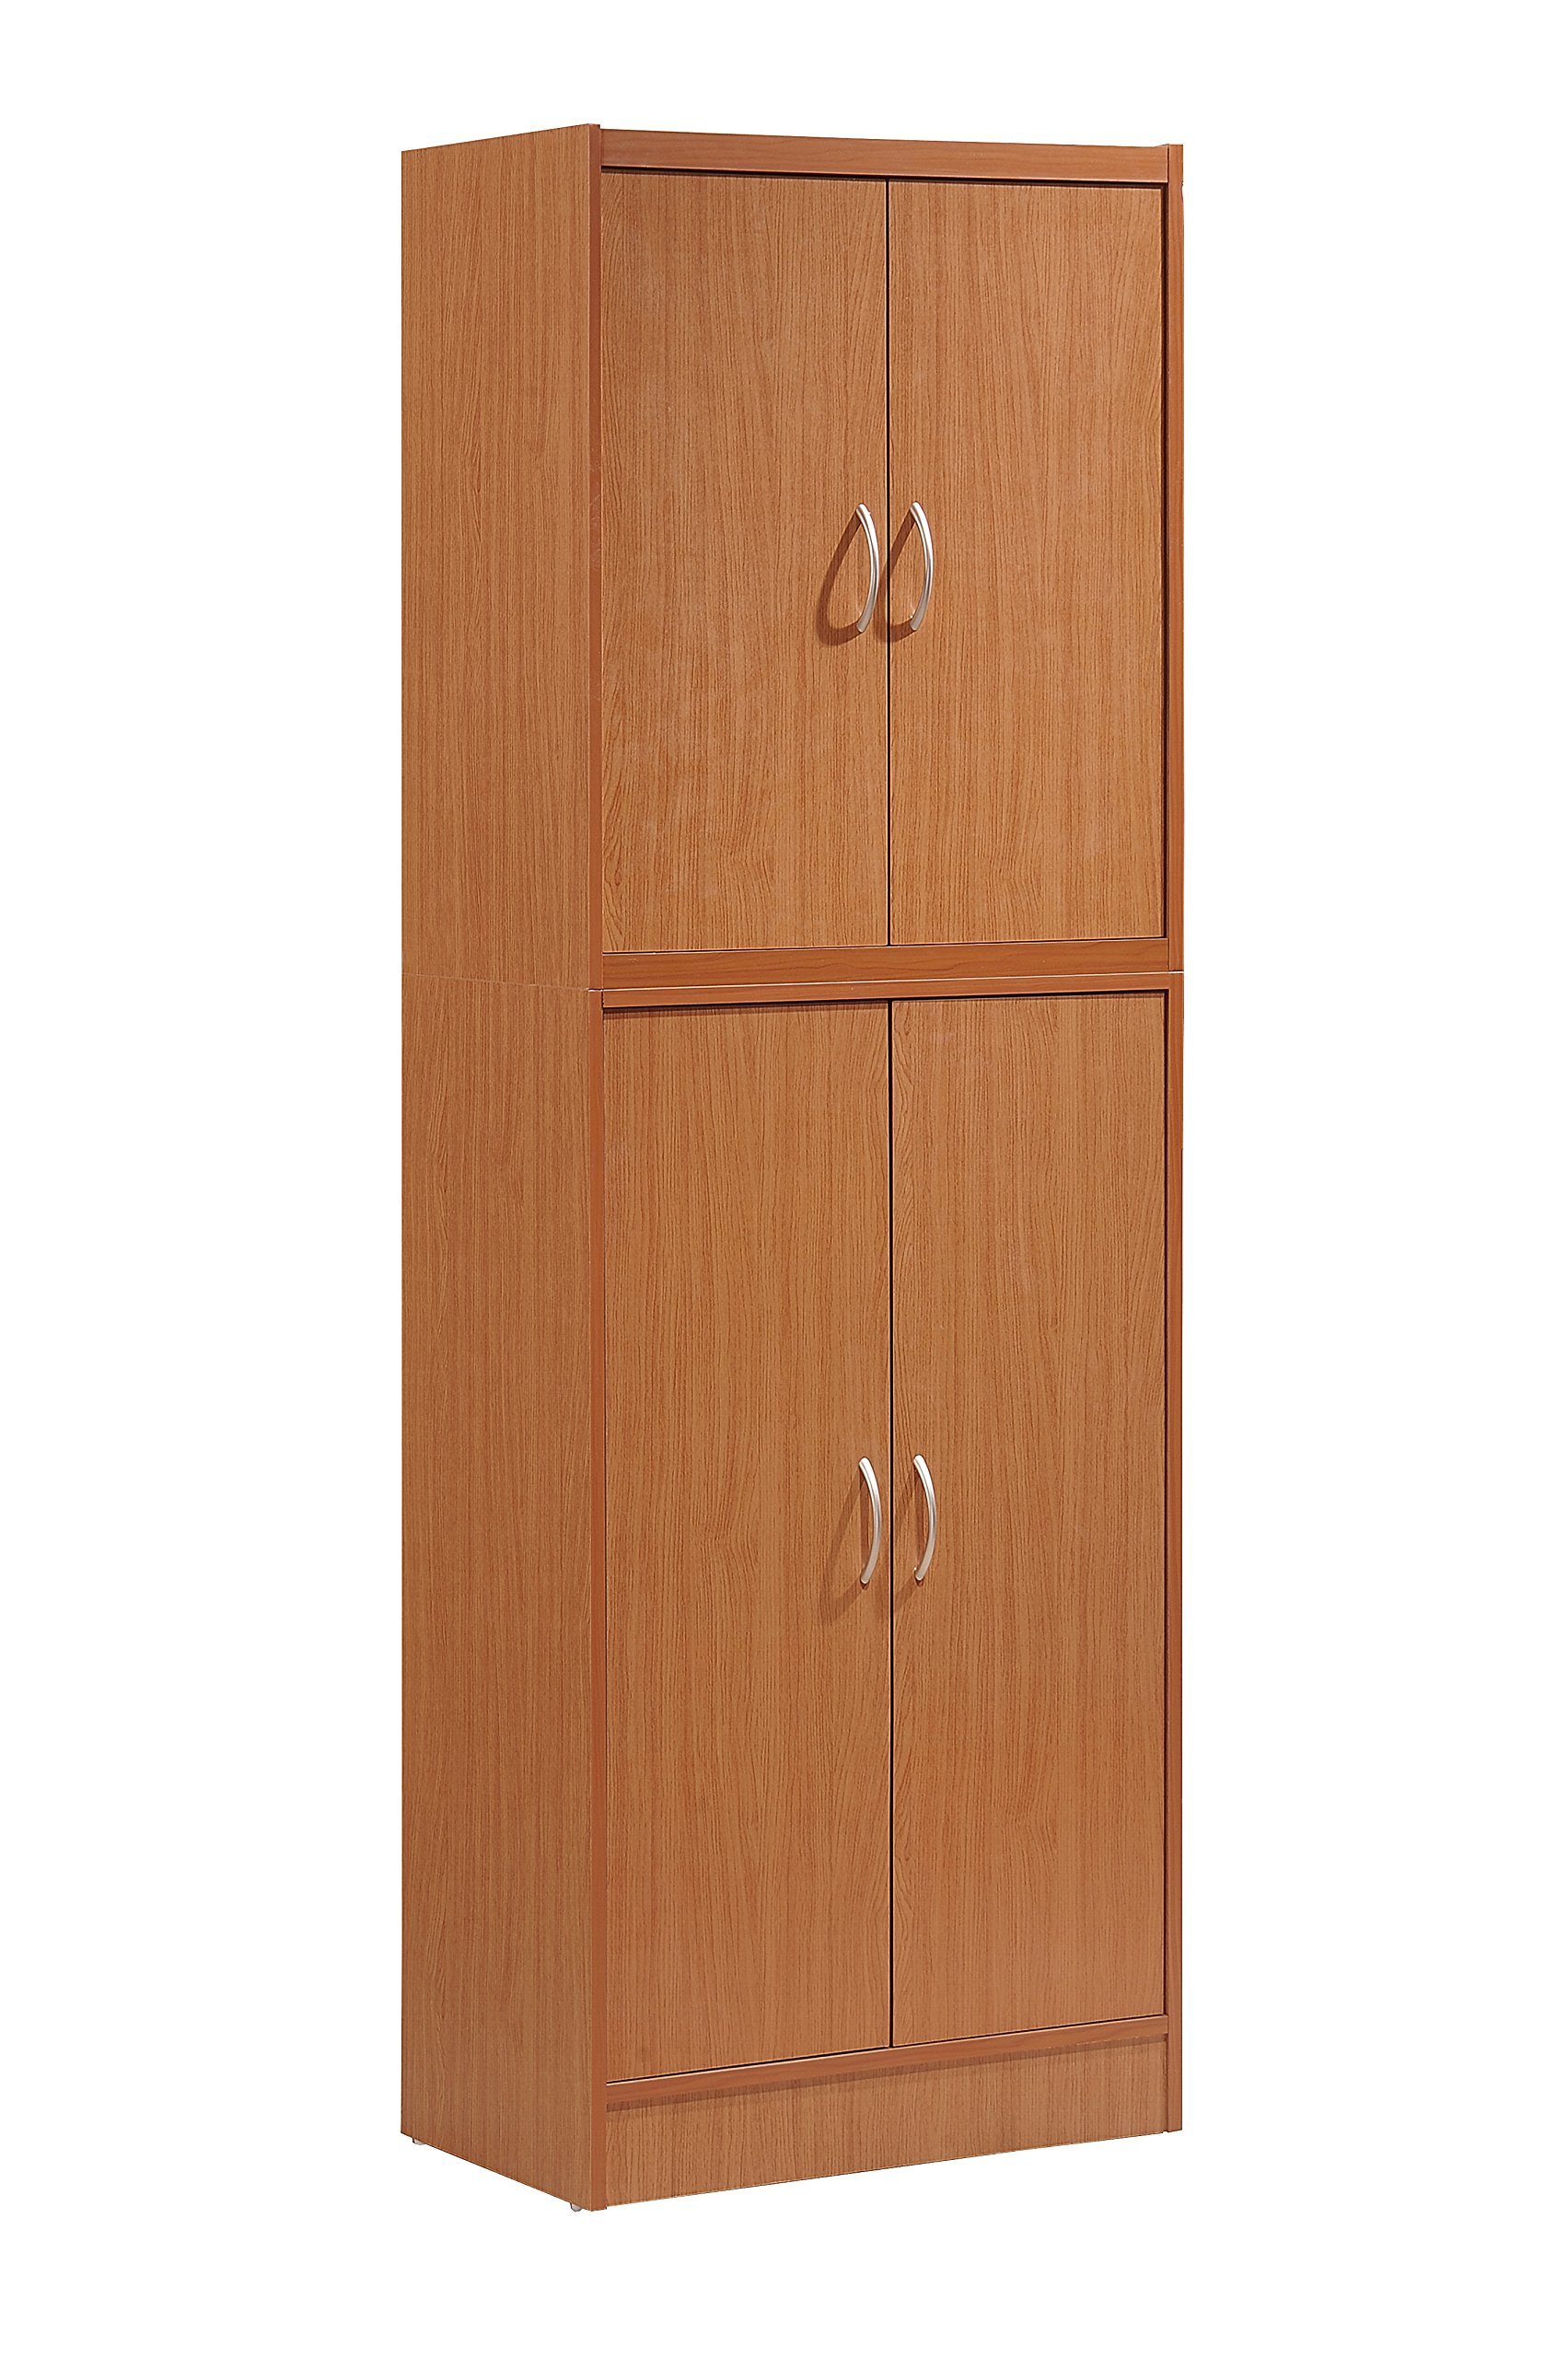 HODEDAH IMPORT Hodedah 4 Door Kitchen Pantry with Four Shelves, Cherry